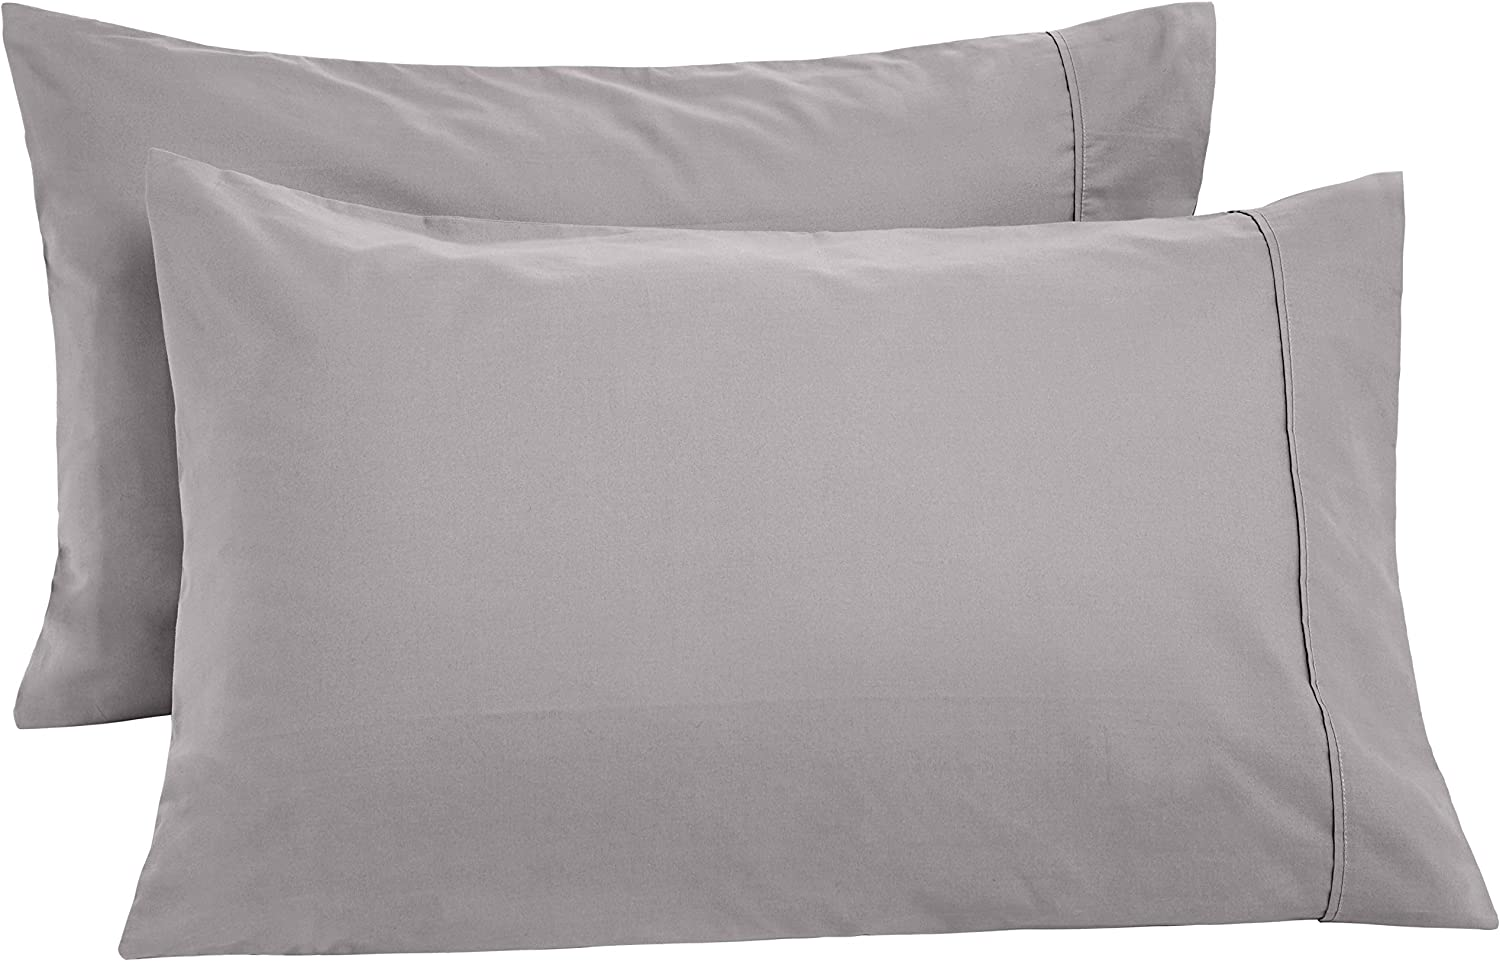 AmazonBasics Ultra-Soft Cotton Pillow Cases - King, Set of 2, Graphite